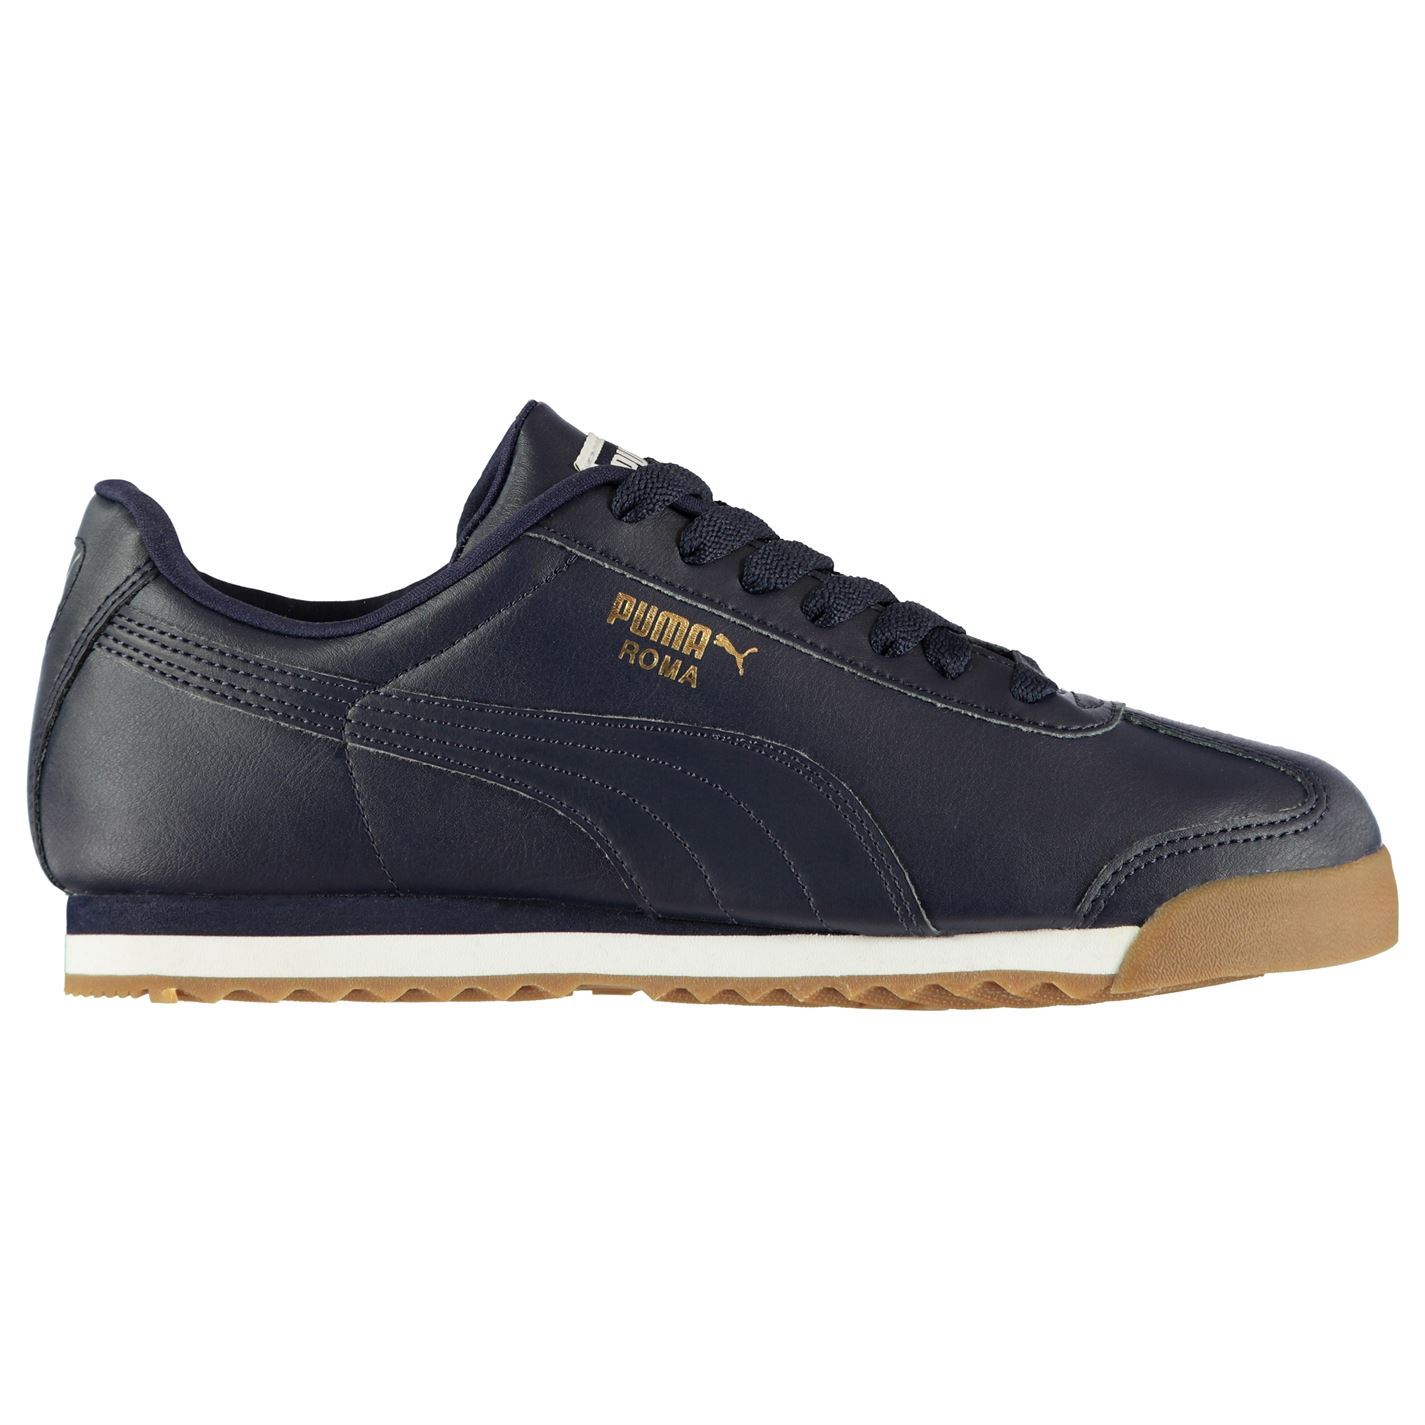 Puma-Roma-Basic-Trainers-Mens-Athleisure-Footwear-Shoes-Sneakers thumbnail 16